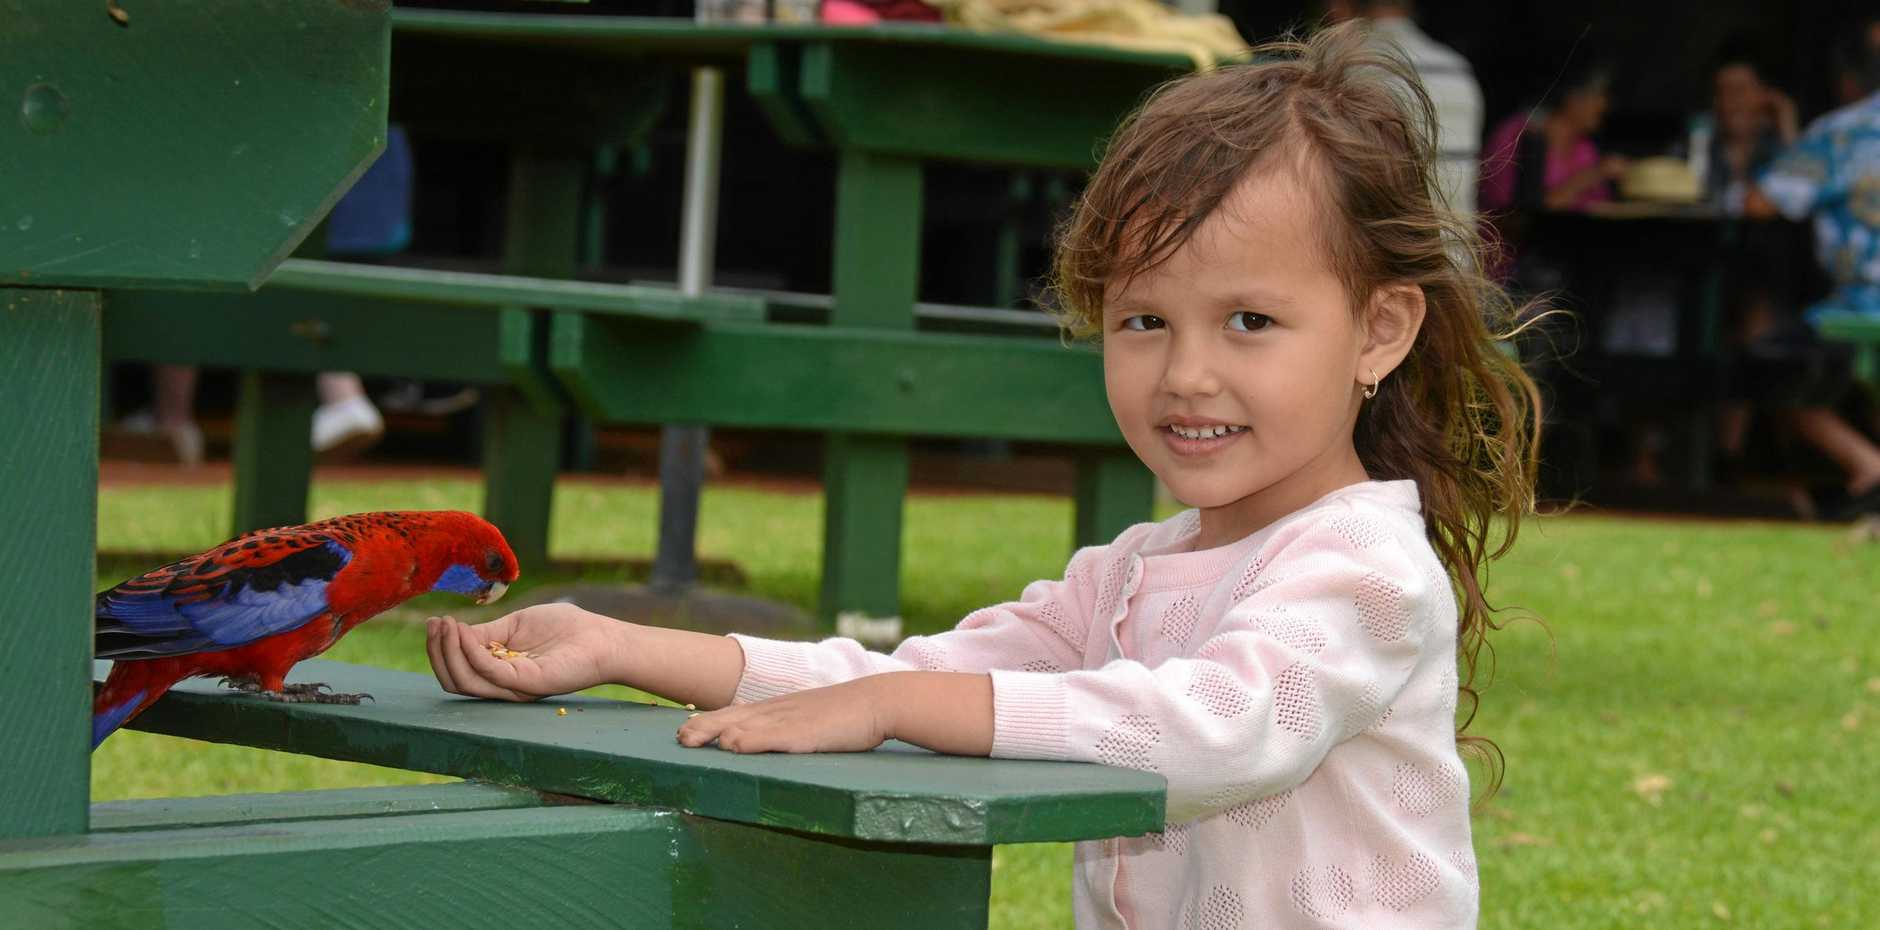 UP CLOSE: Aviya Cutts feeds the birds at the Bunya Mountains.